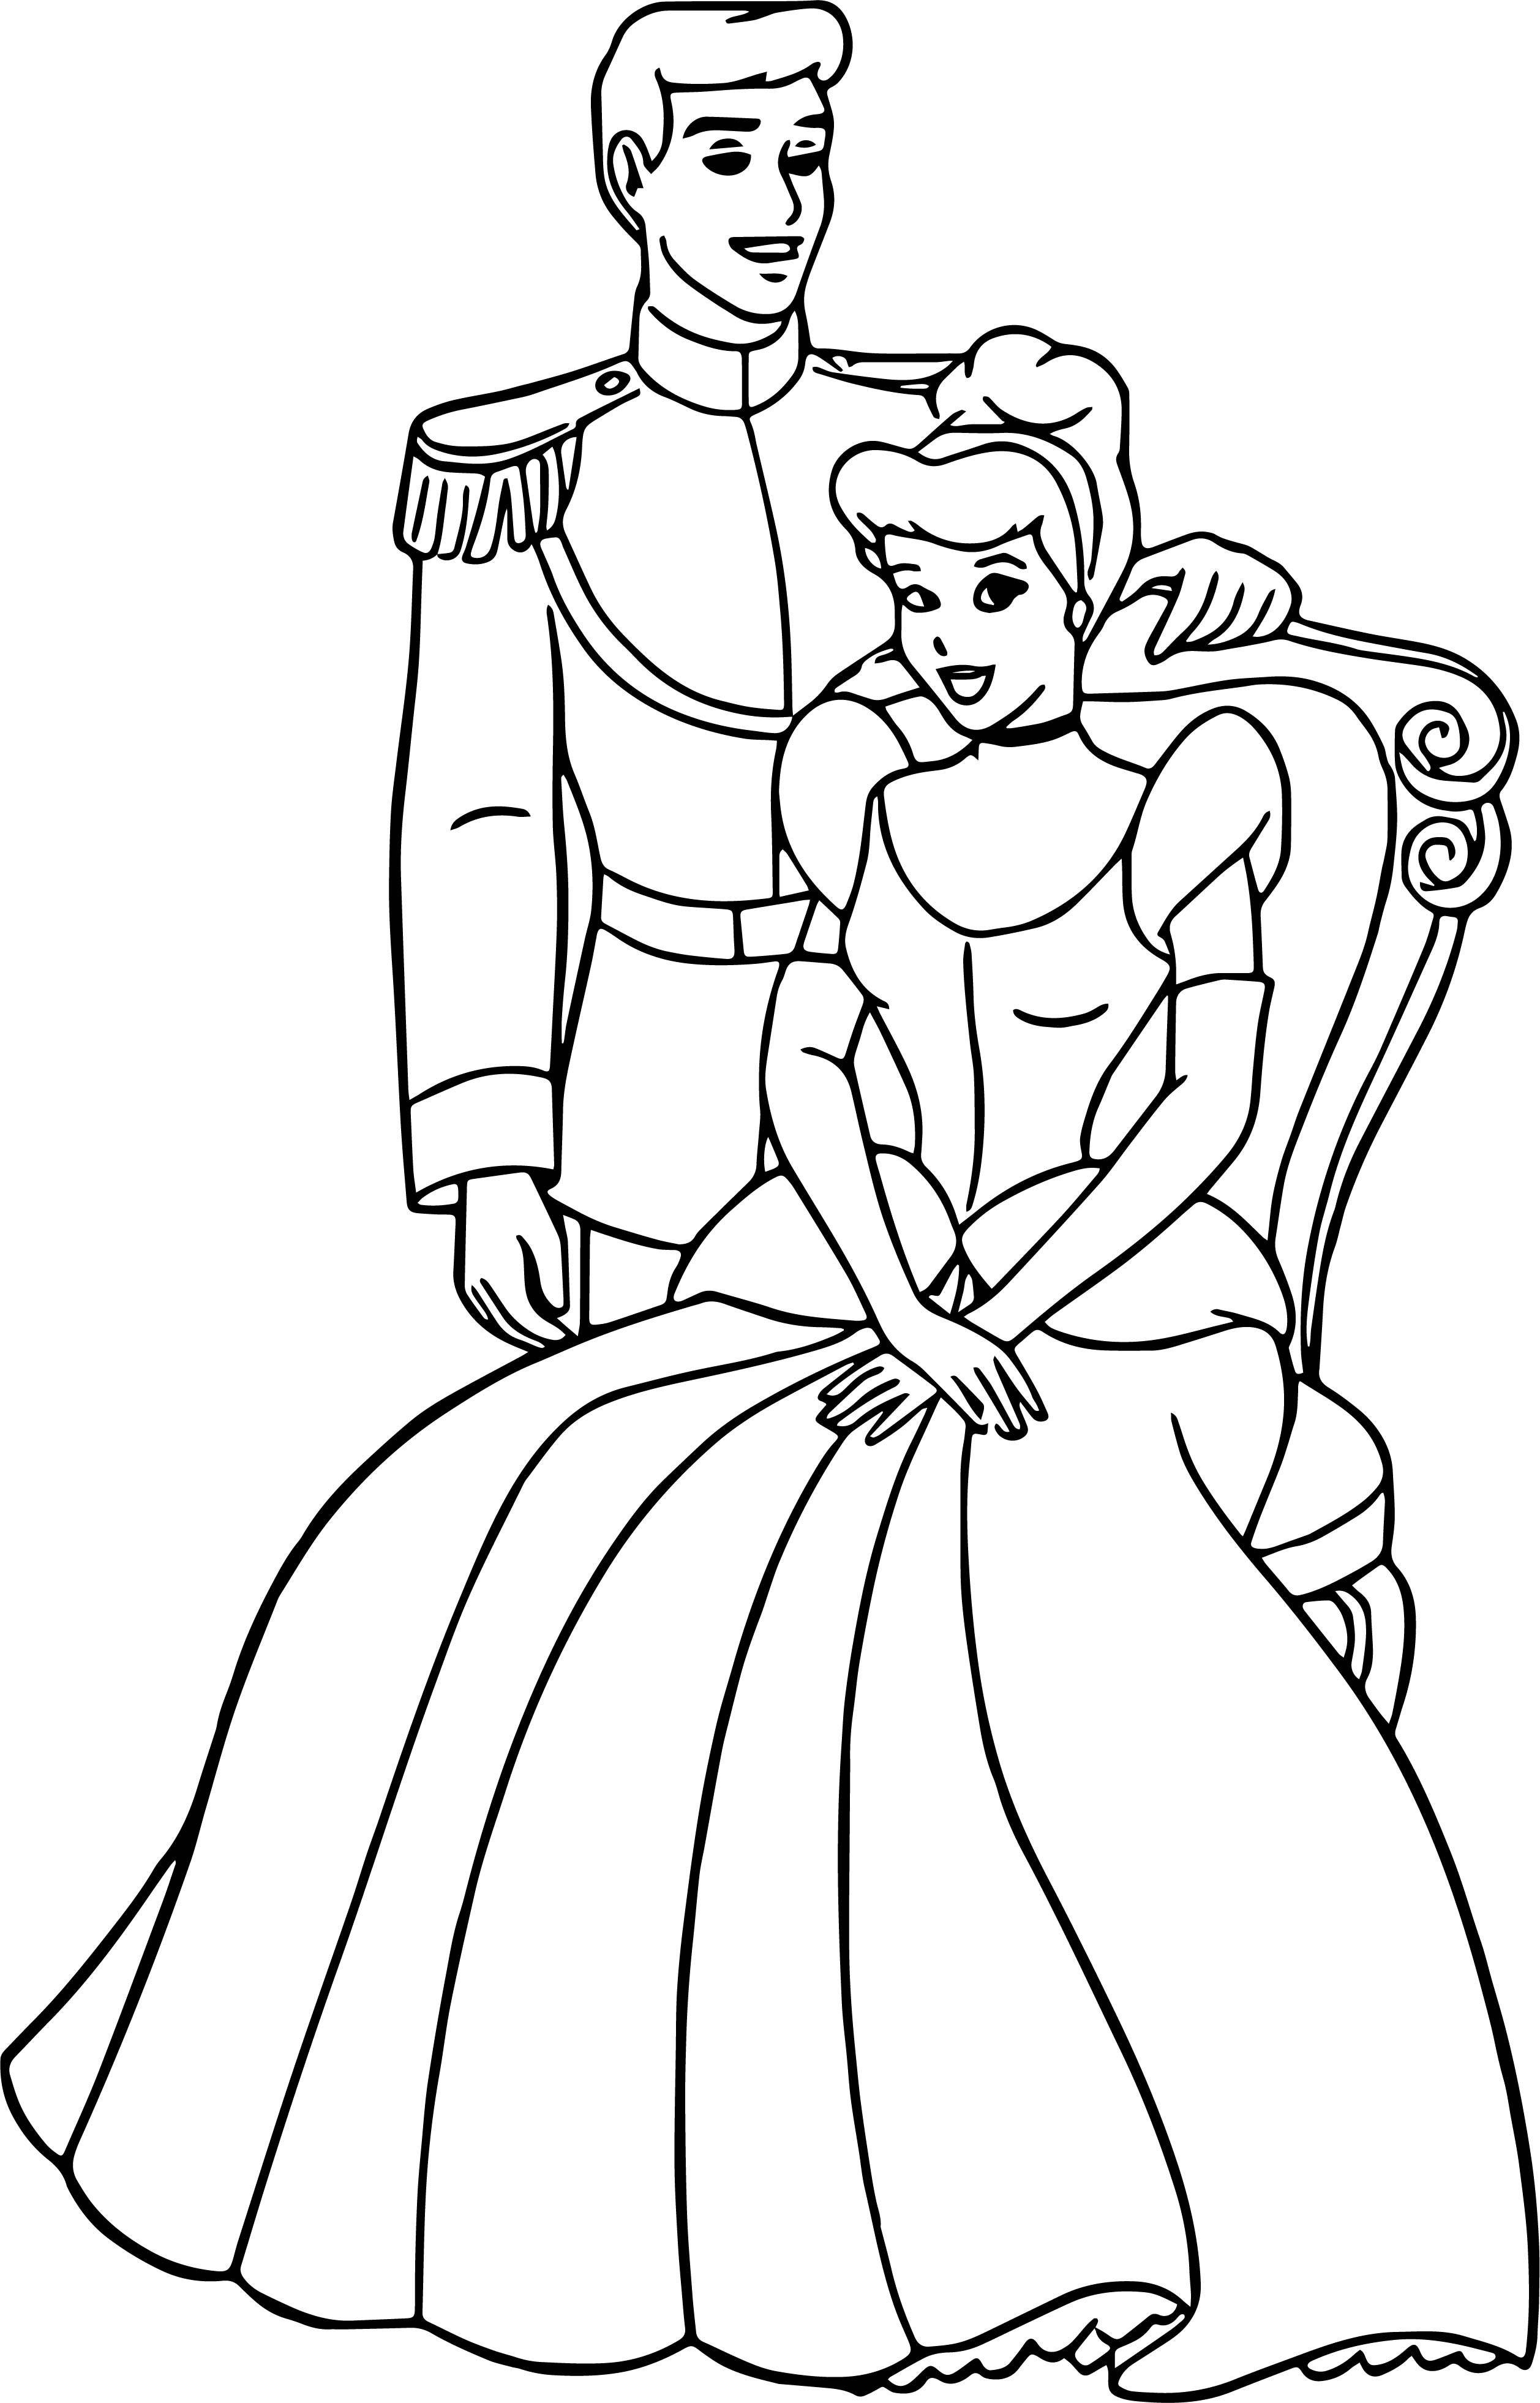 Cinderella And Prince Charming Coloring Pages 25 ...